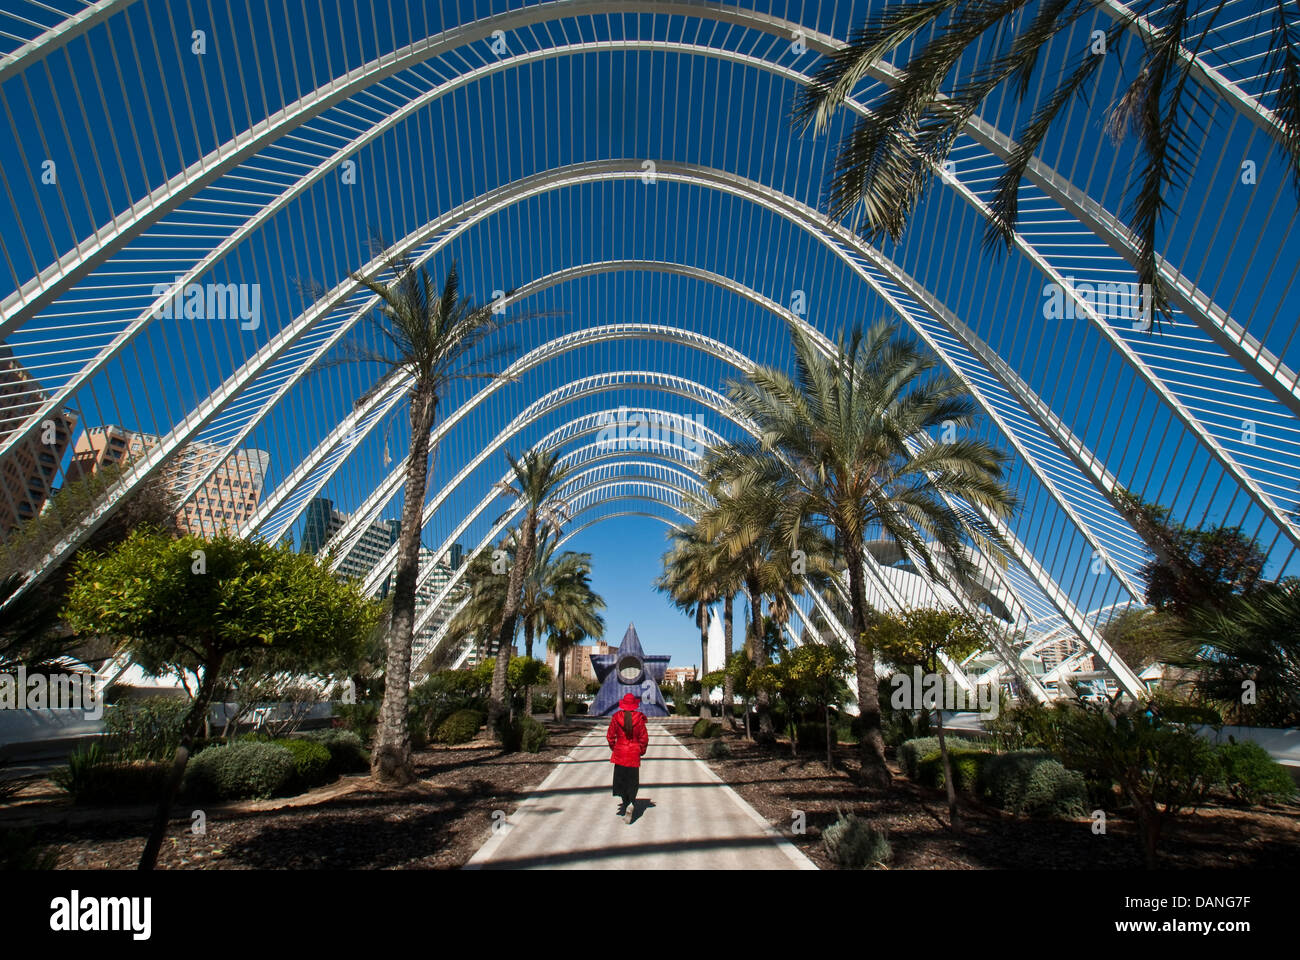 Valencia's City of Arts and Sciences Umbracle gardened esplanade and exhibition zone. - Stock Image